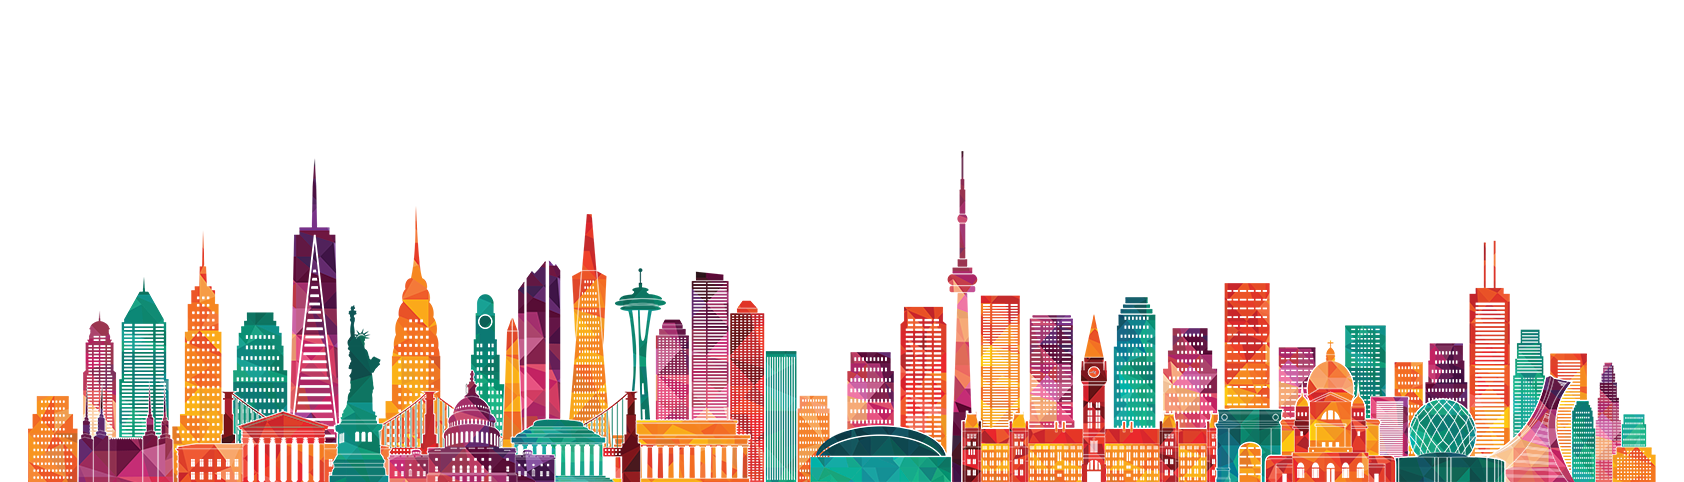 City-skylines_background.png